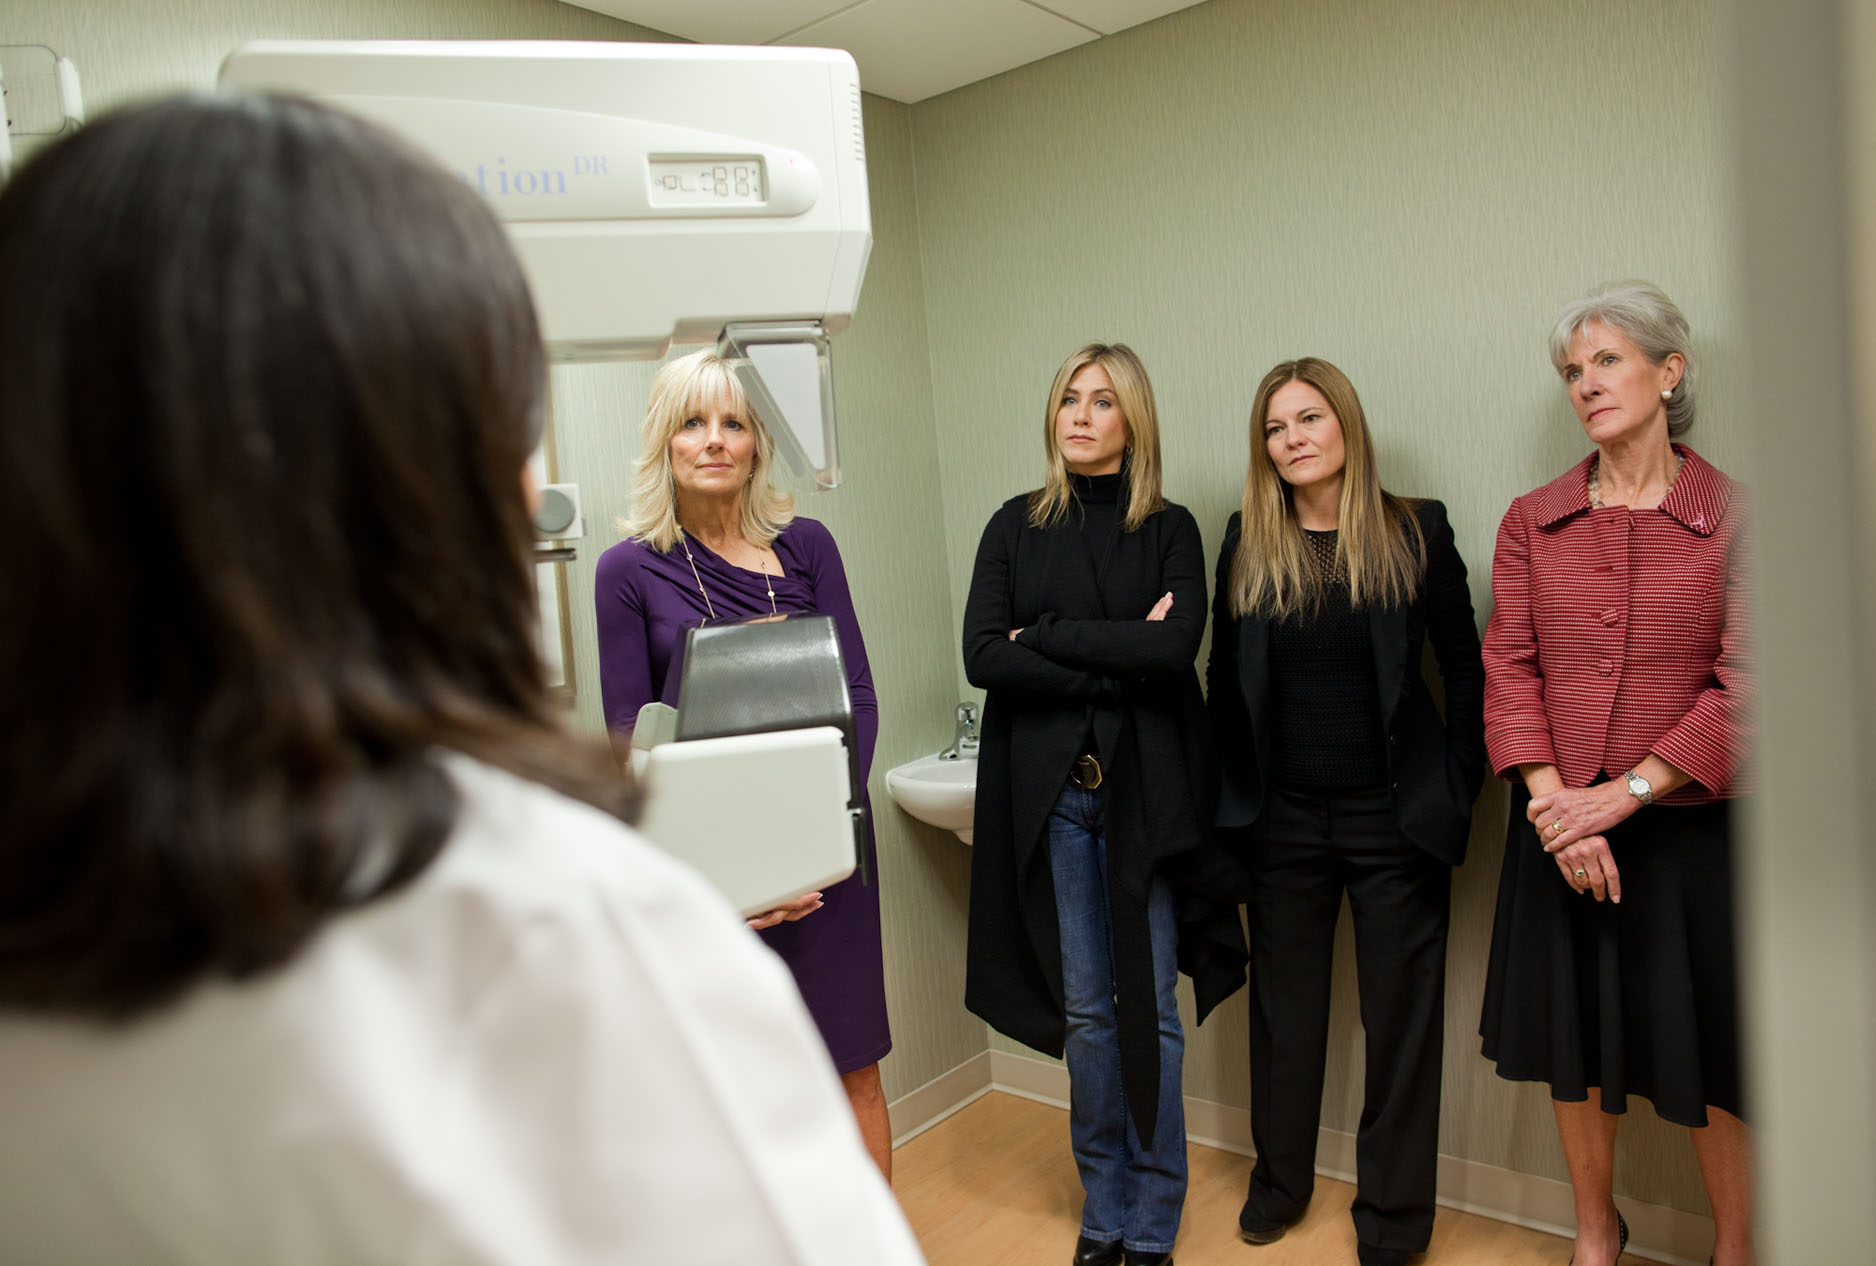 Dr. Jill Biden with Jennifer Aniston, Kristin Hahn, and Secretary of Health and Human Services Kathleen Sebelius